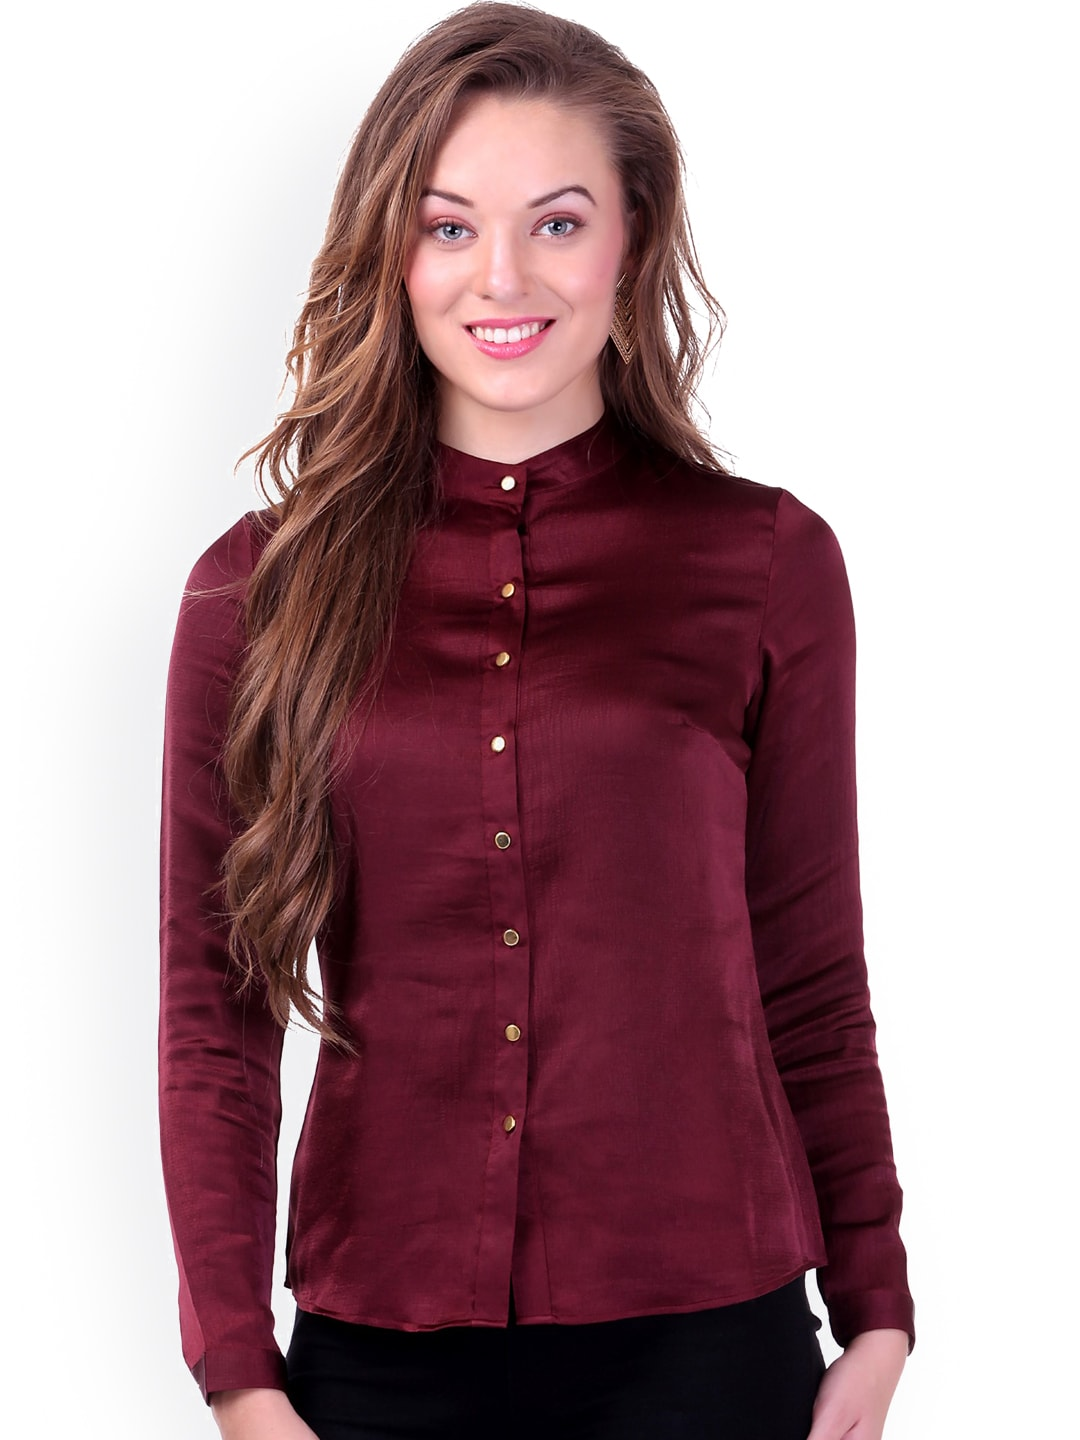 Shirts For Women | Gommap Blog